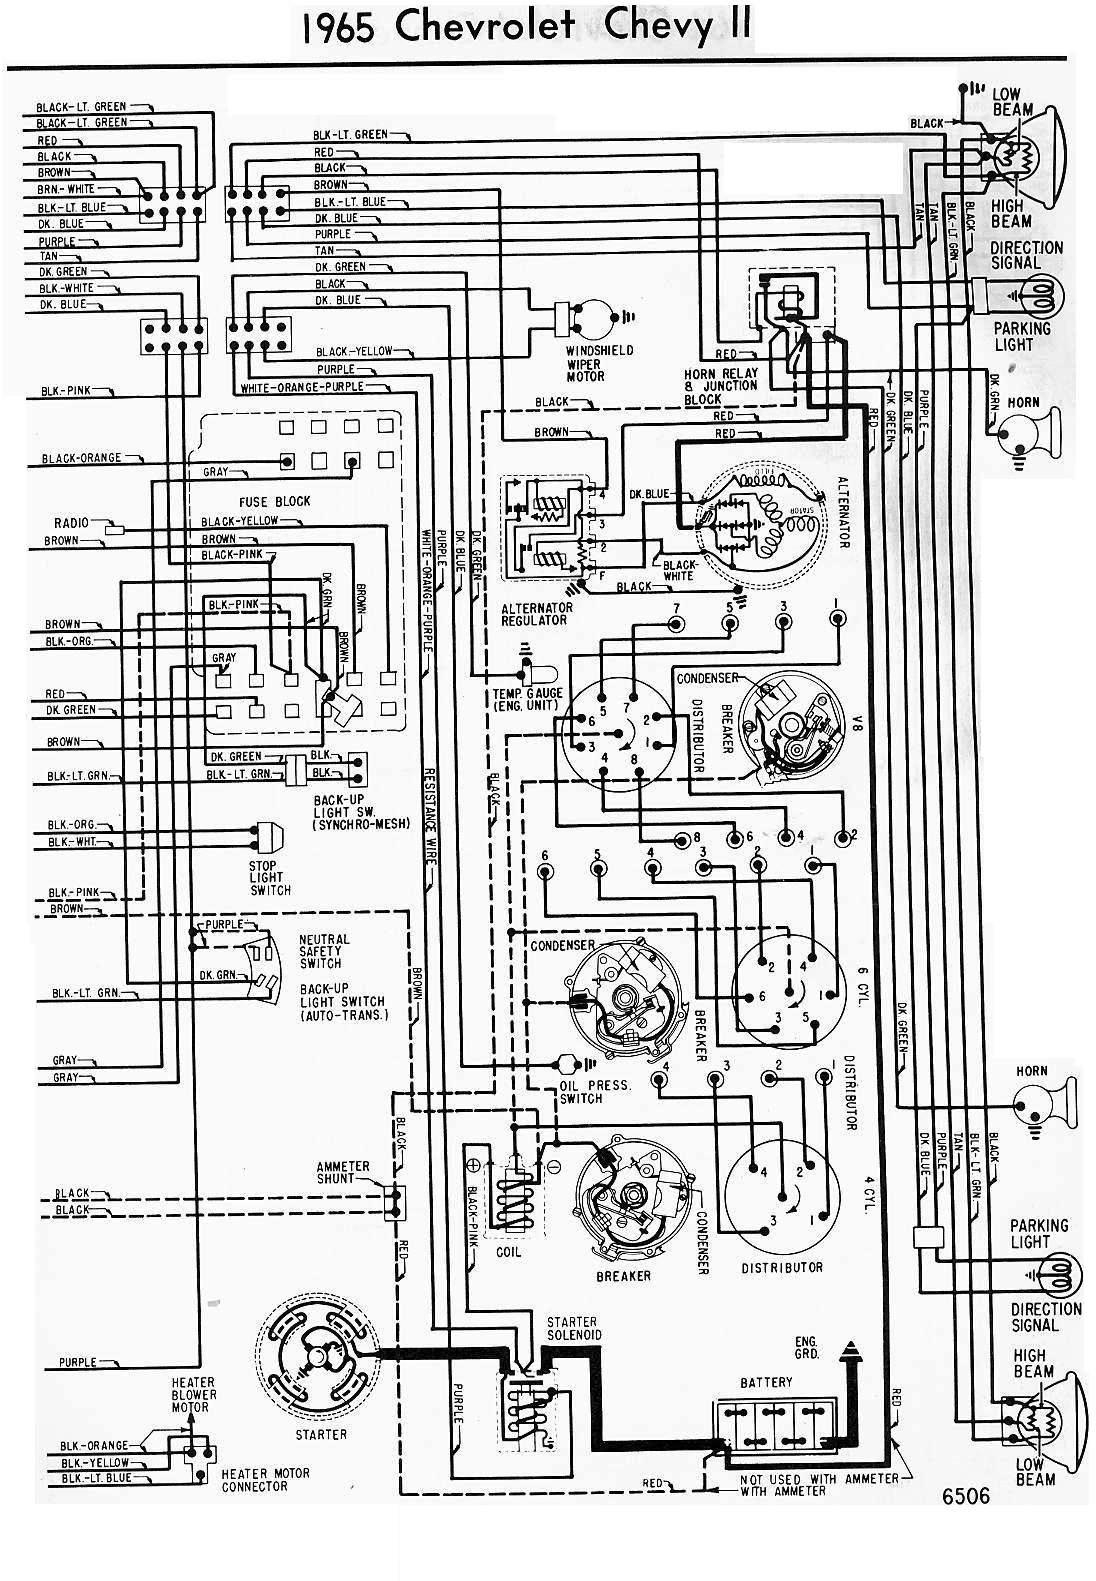 1970 karmann ghia wiring diagram free download 8n wiring diagram free download